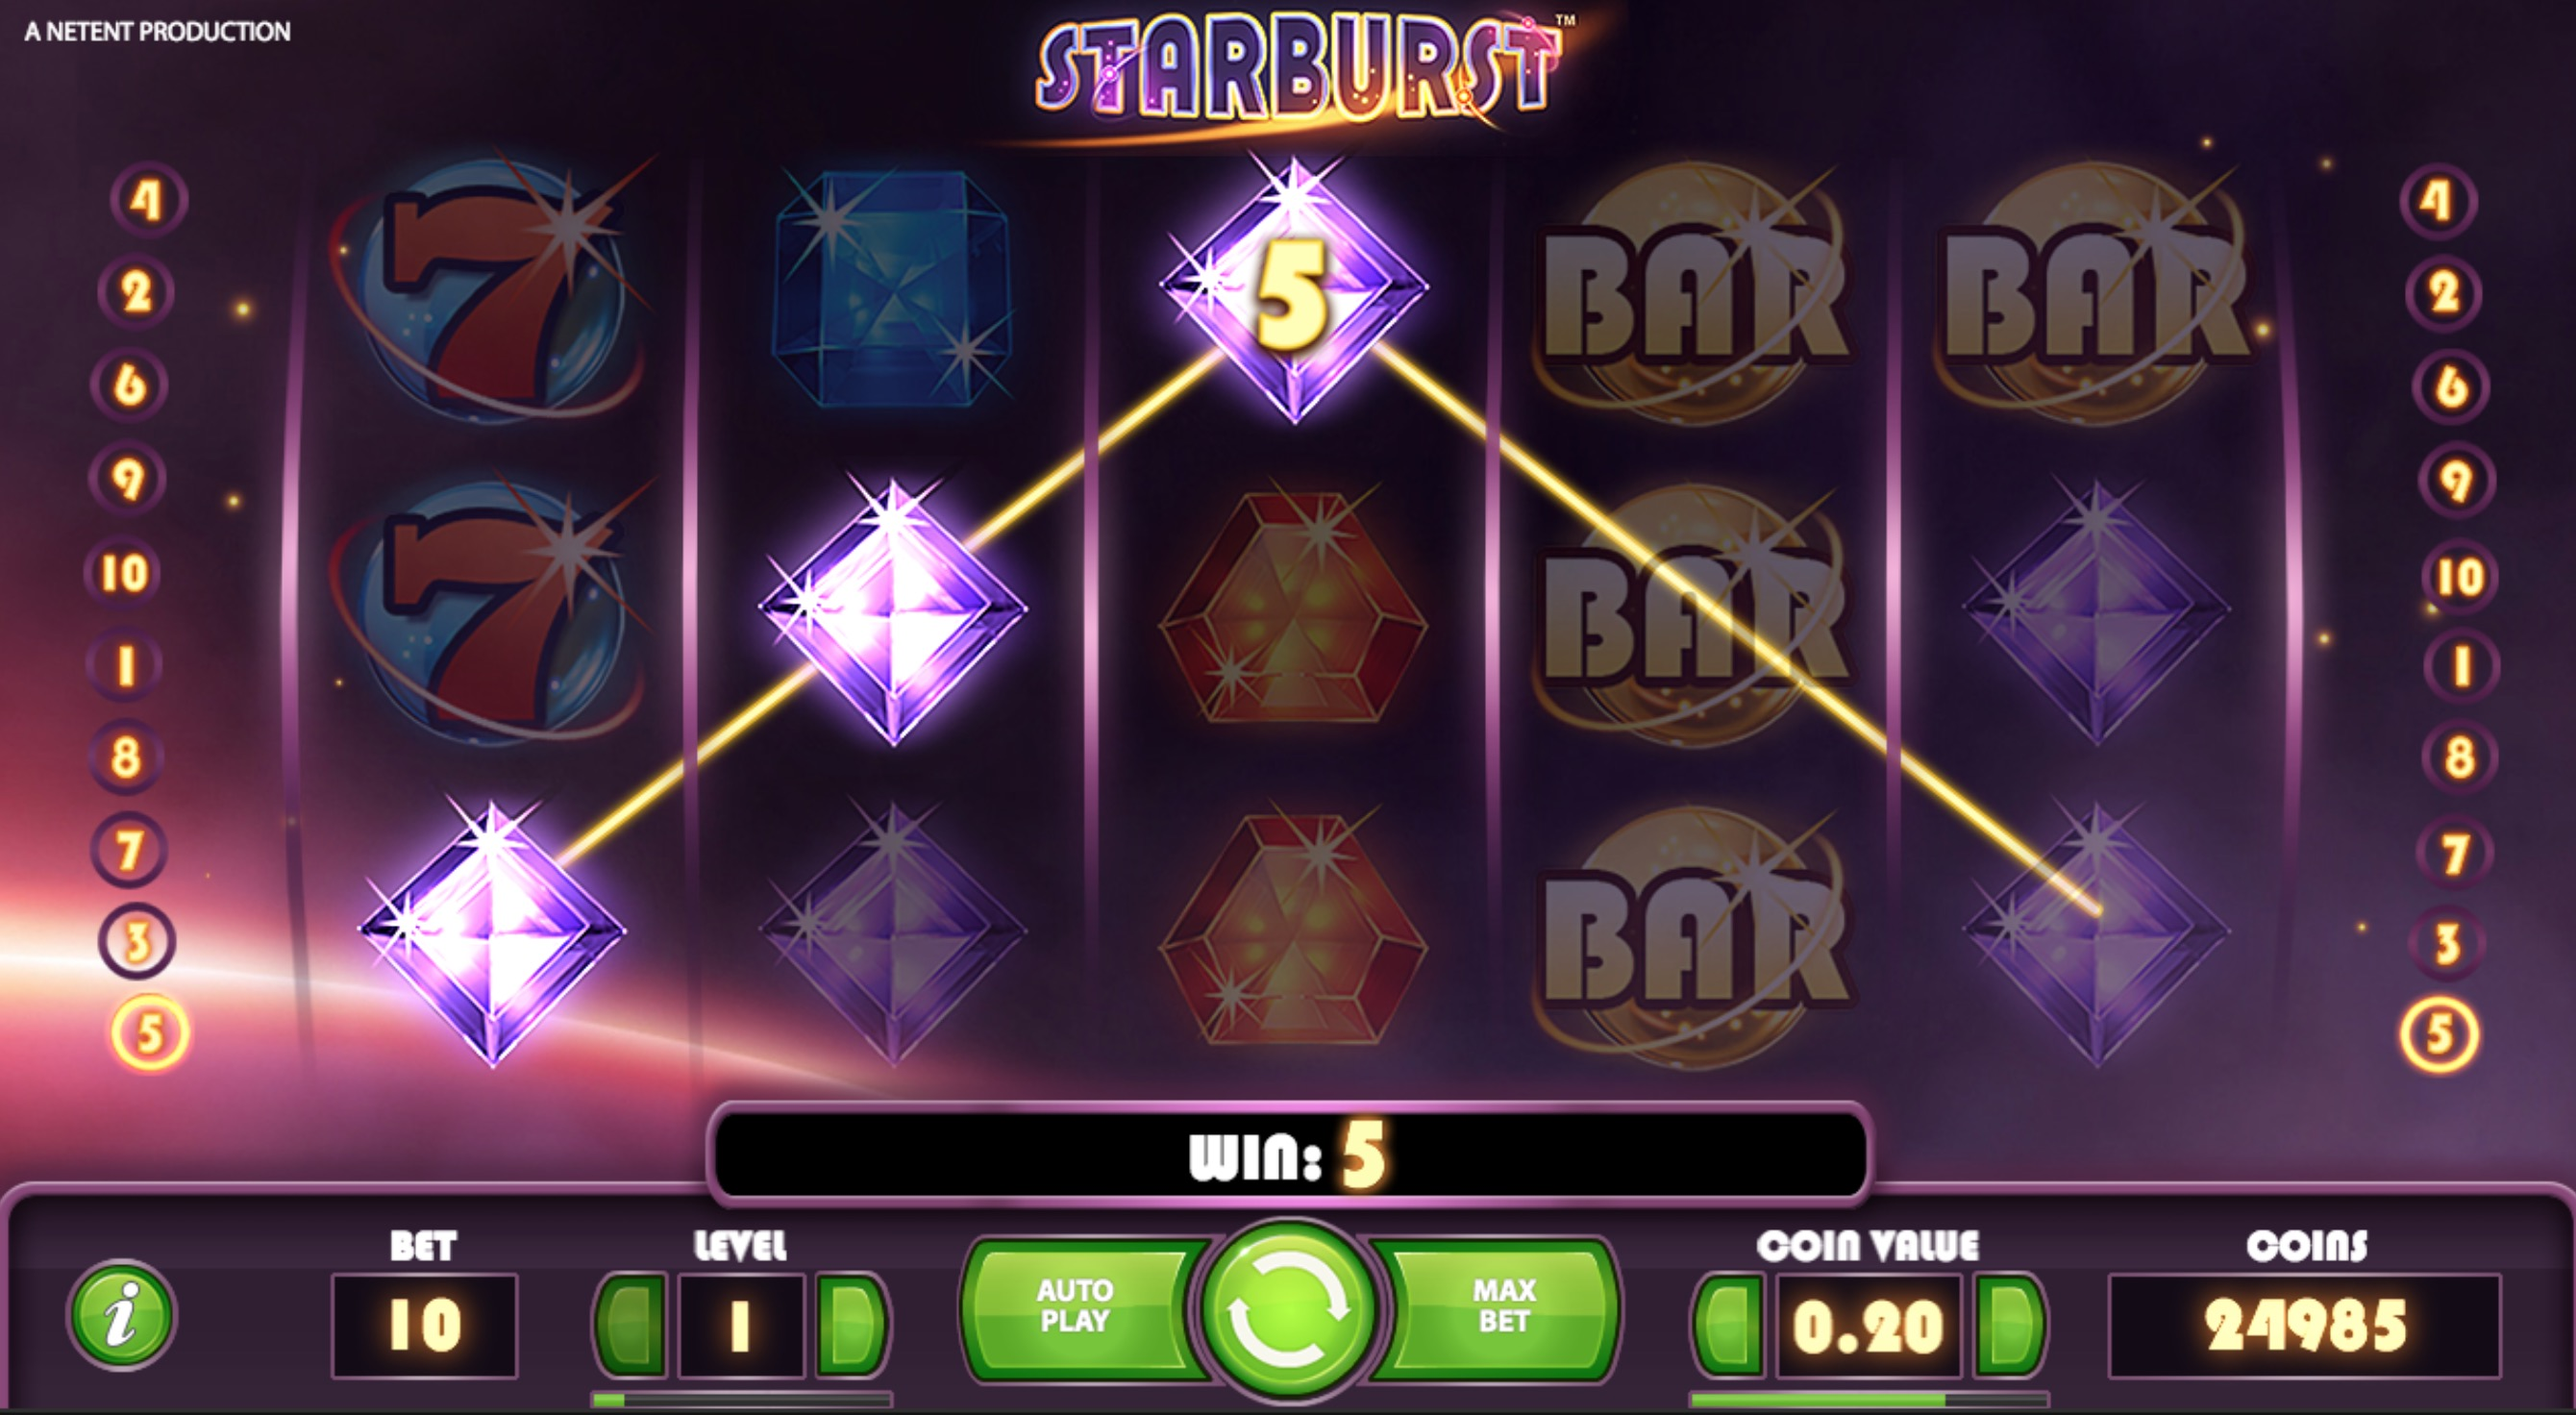 An example Of a Starburst Win